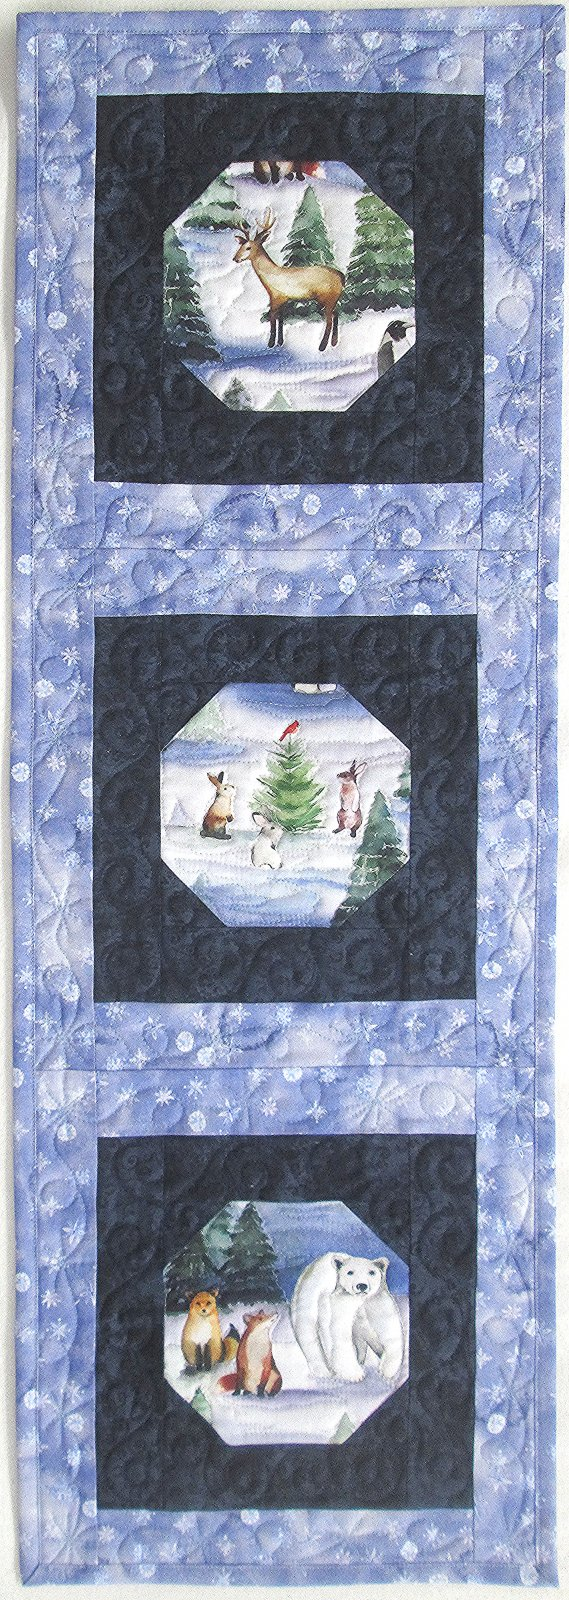 Second Time Around Winter Wonderland Table Runner or Wall Hanging Kit